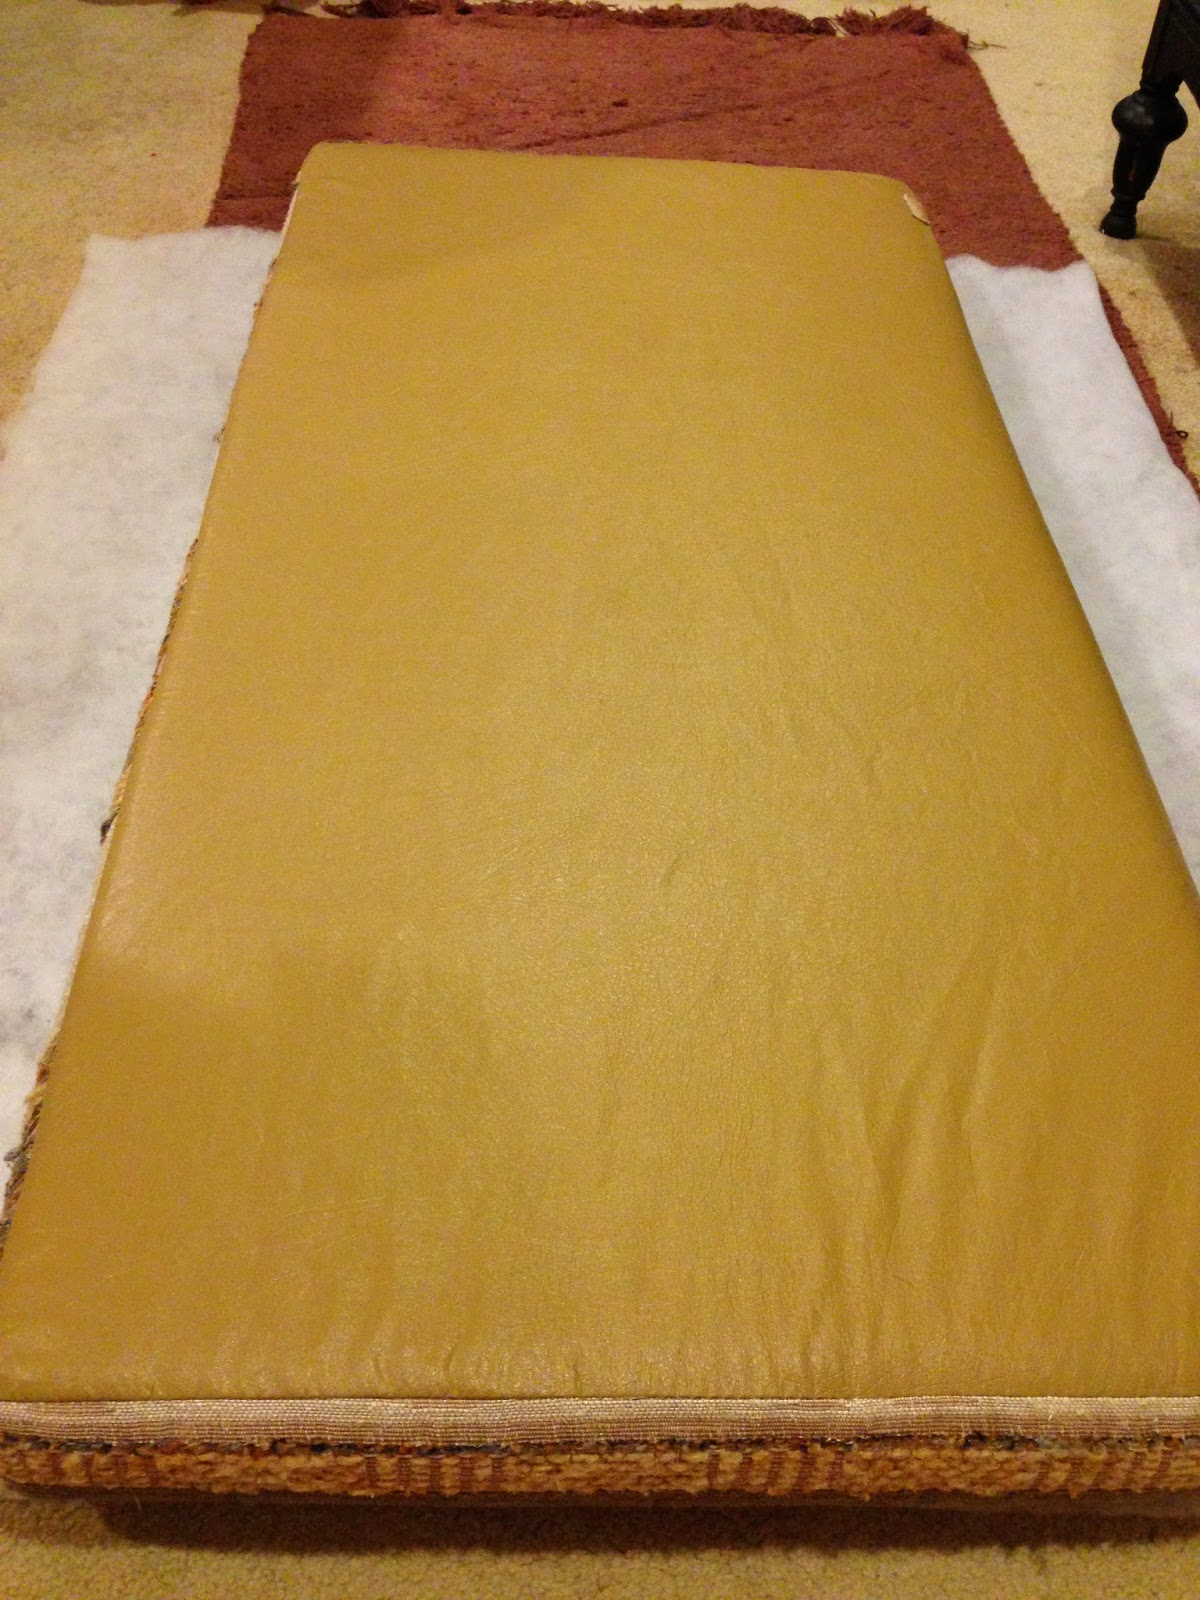 Reupholstering Sofa Cushions Do It Yourself 8 Way Hand Tied Sectional Camping Dinette Cushion Upholstery